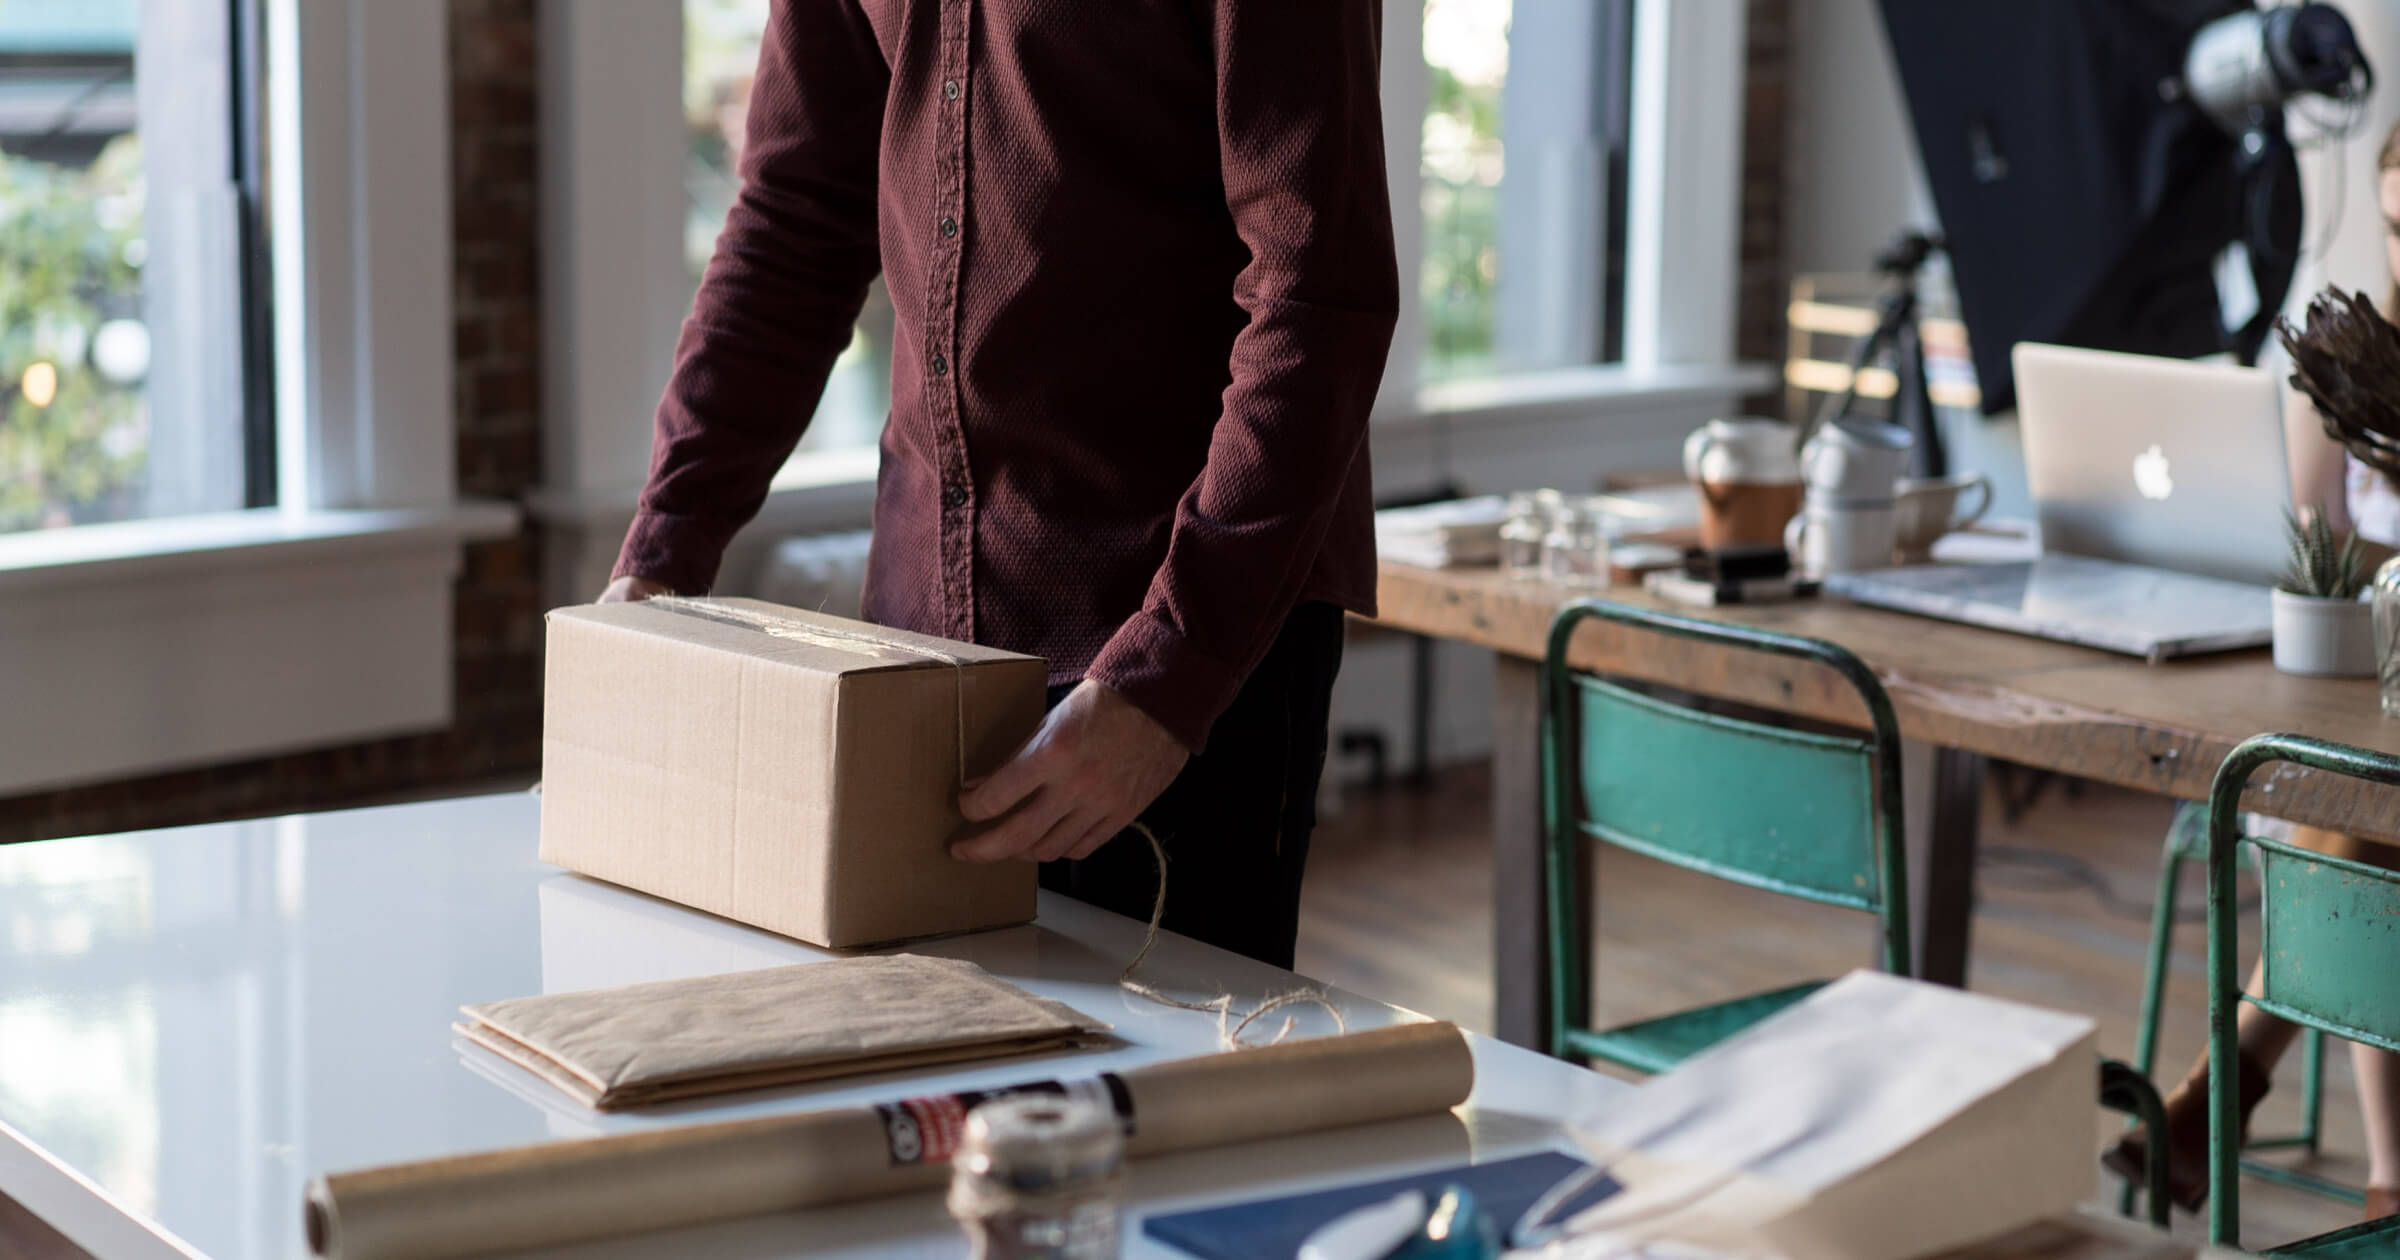 How to Retain Employees That Want to Relocate